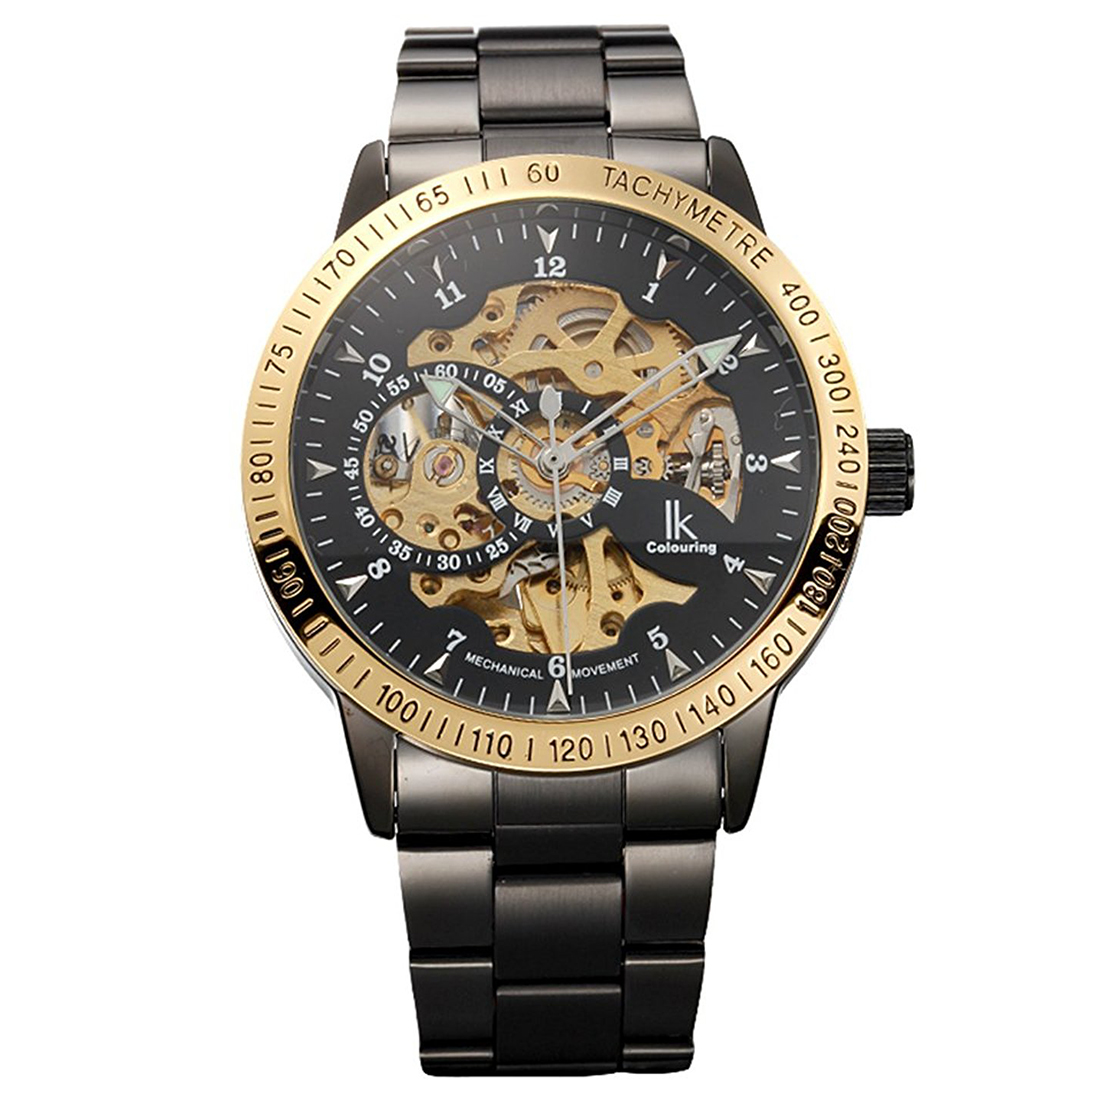 Ikcolouring Black Steel Skeleton Automatic Mechanical Wrist watch цена и фото